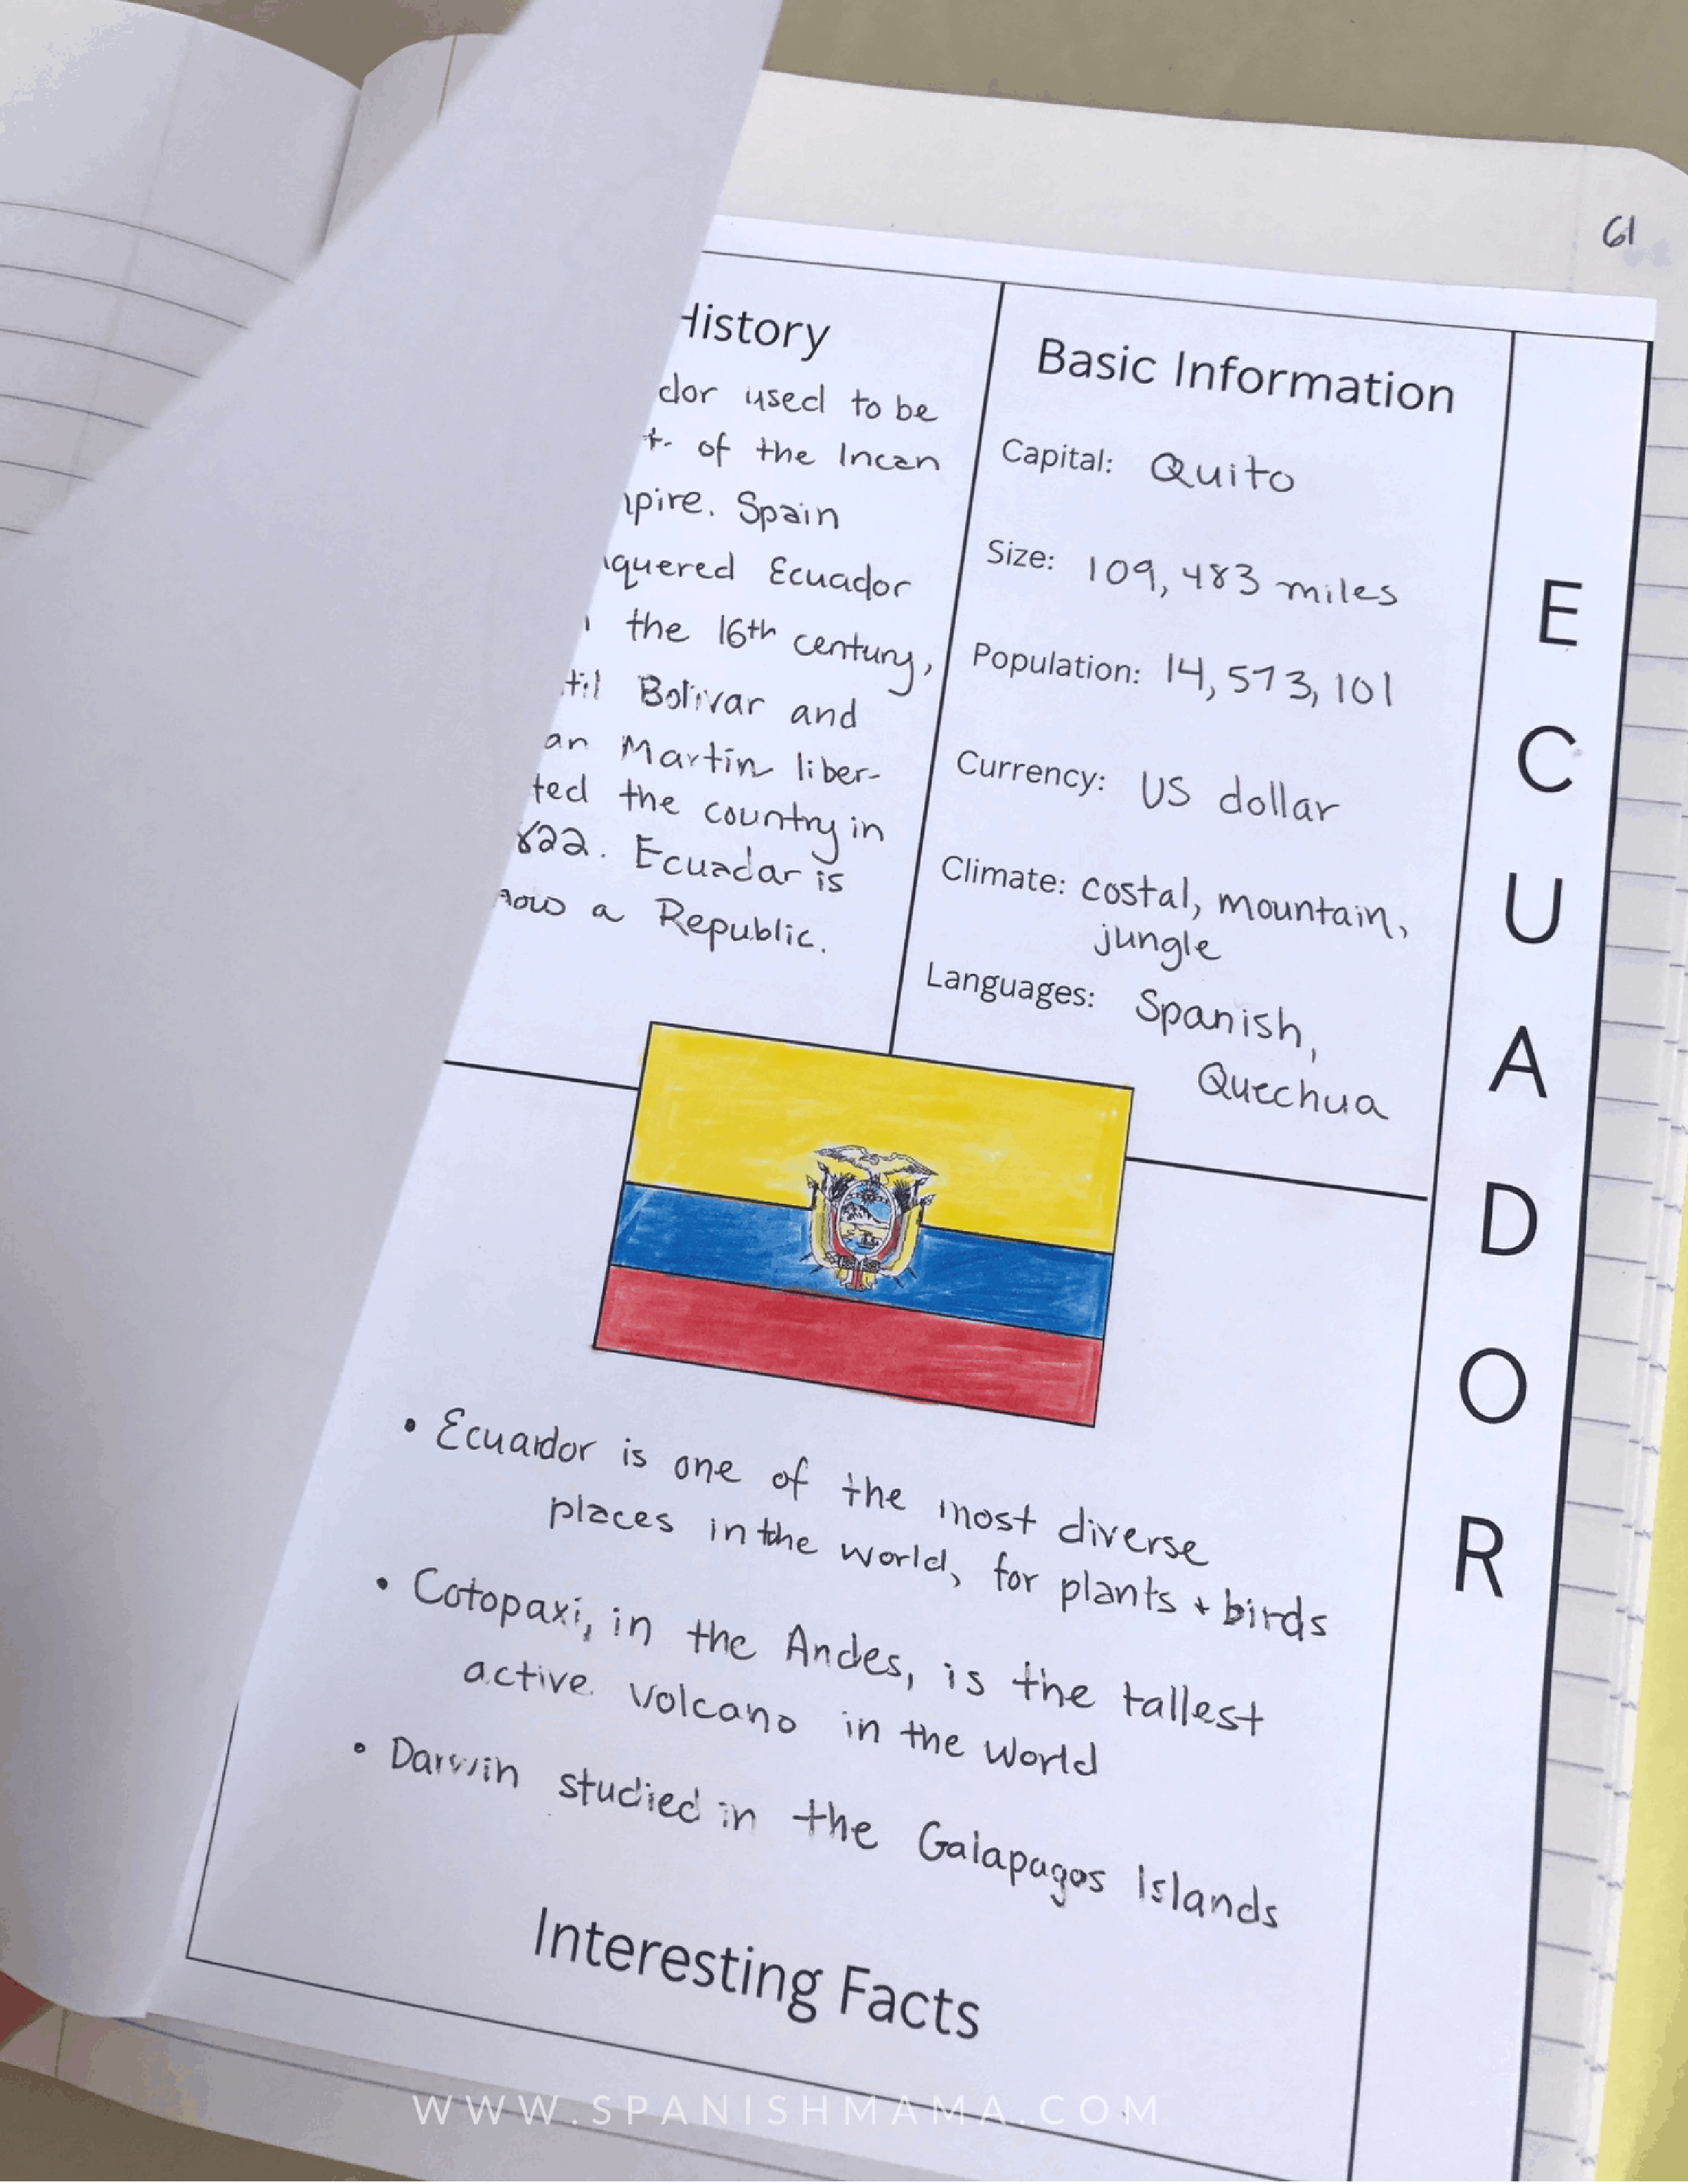 Spanish Interactive Notebooks: What, Why, and How to Use Them